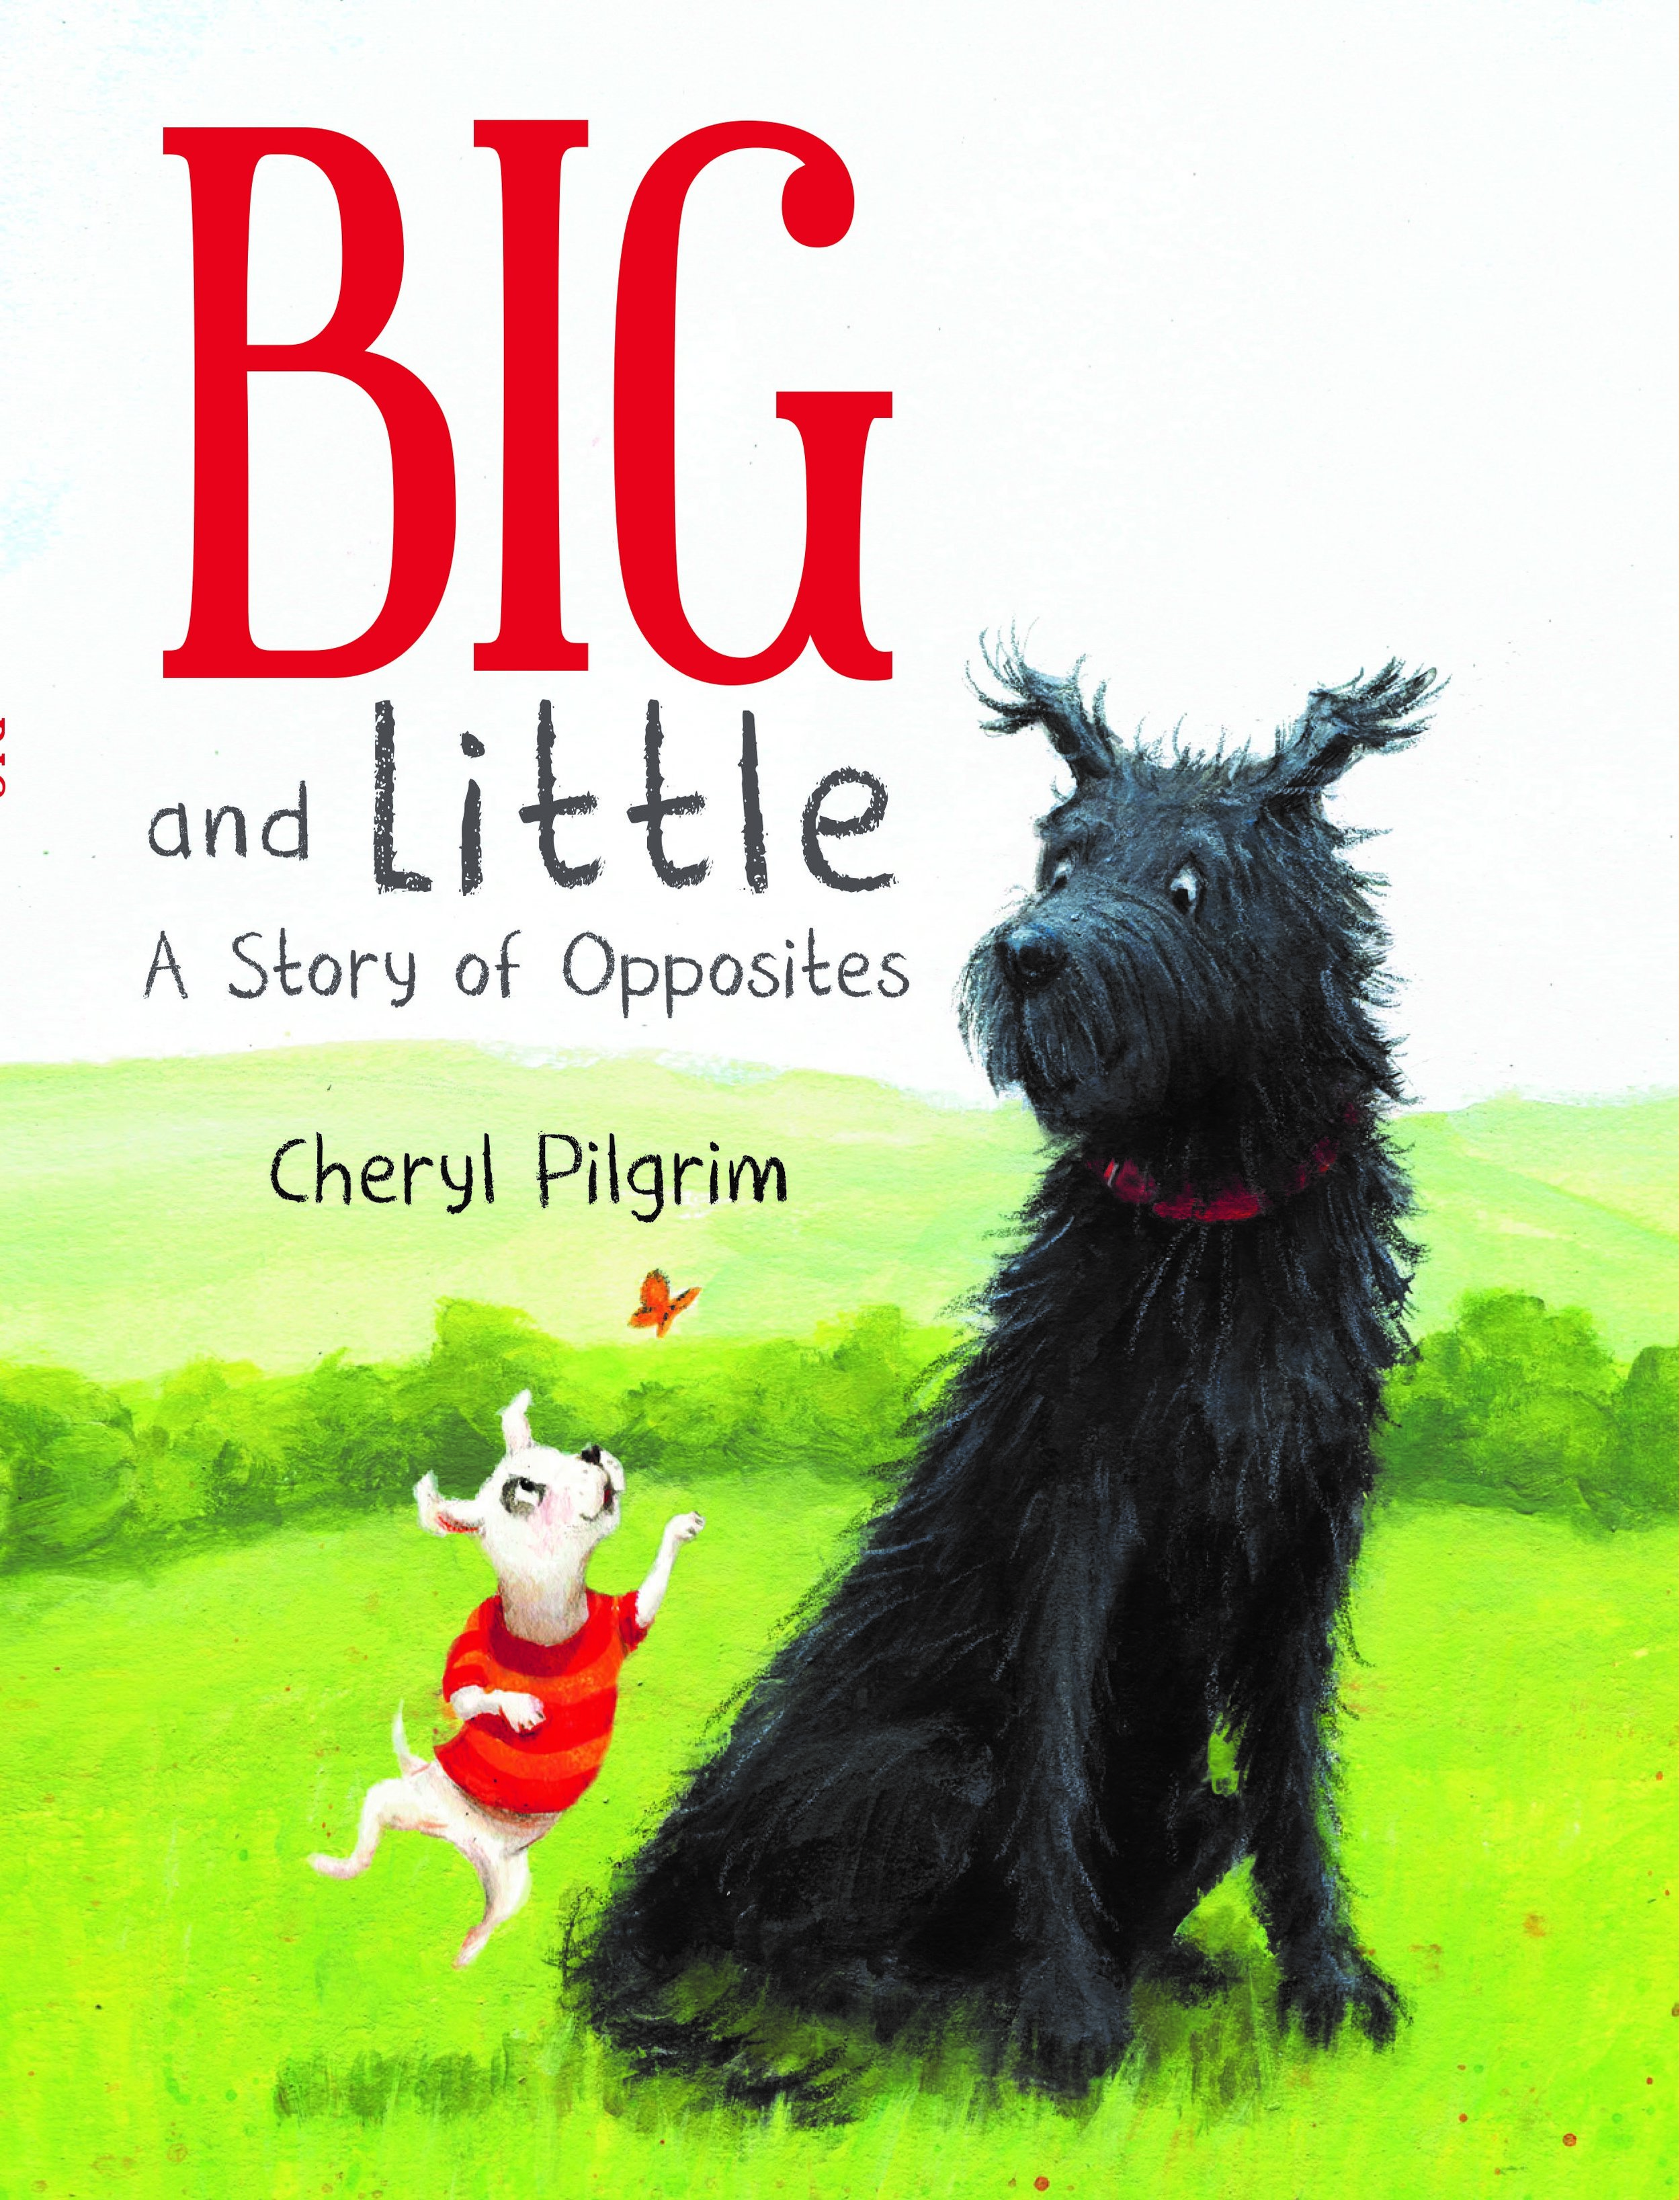 pilgrim_big and little cover.jpg